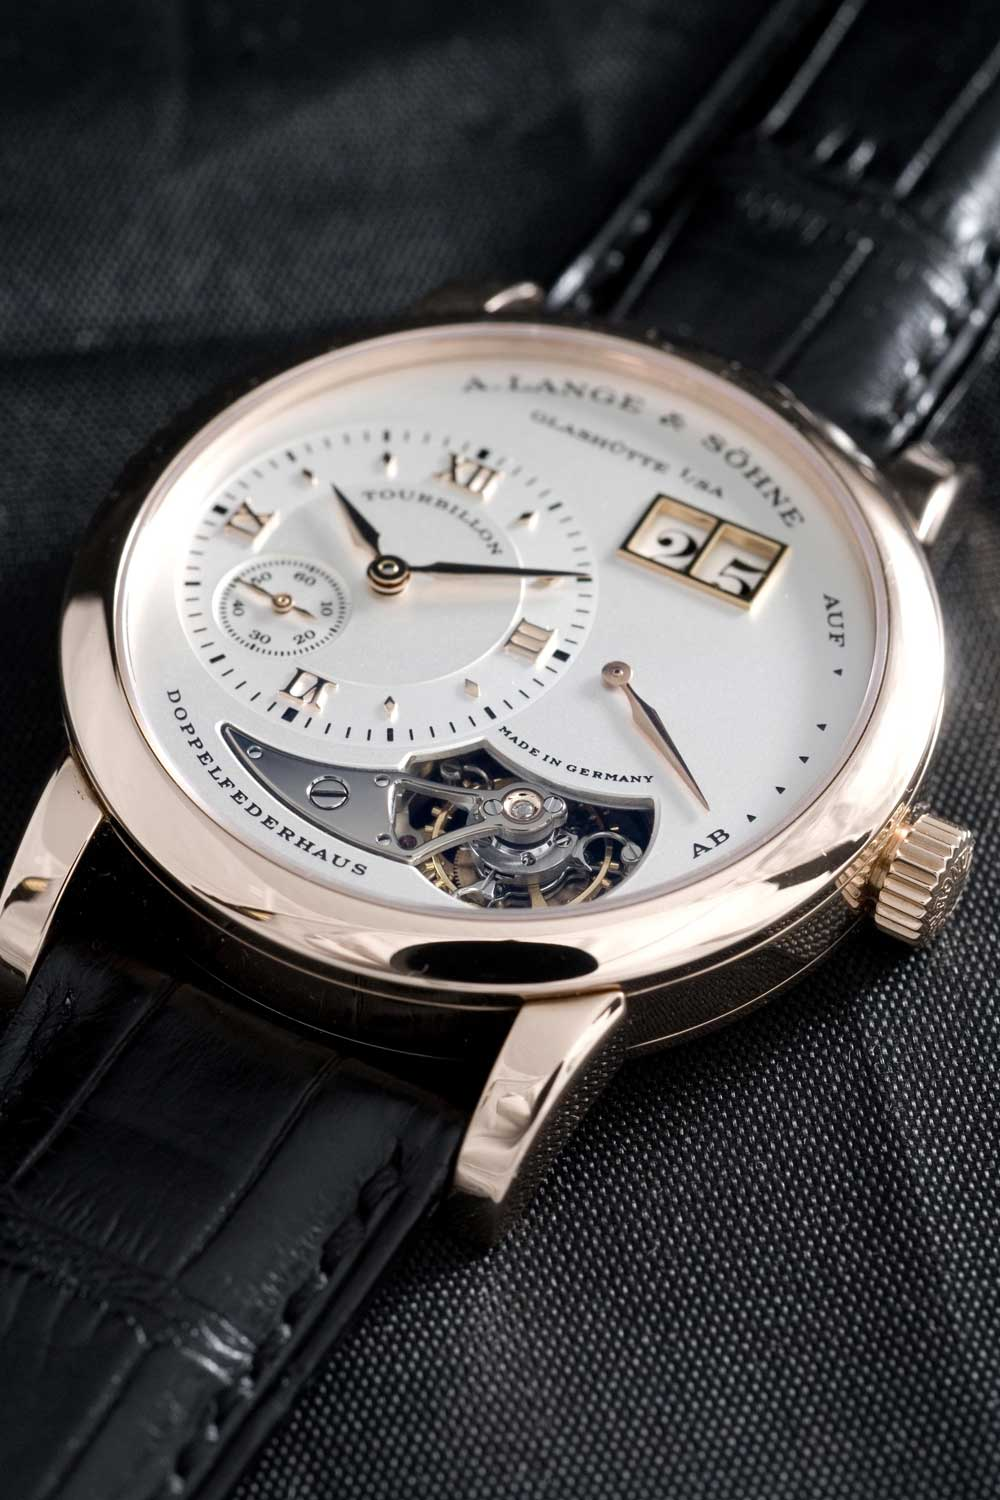 The Lange 1 Tourbillon, launched in 2000 in a limited edition of 150 in platinum and 250 in pink gold